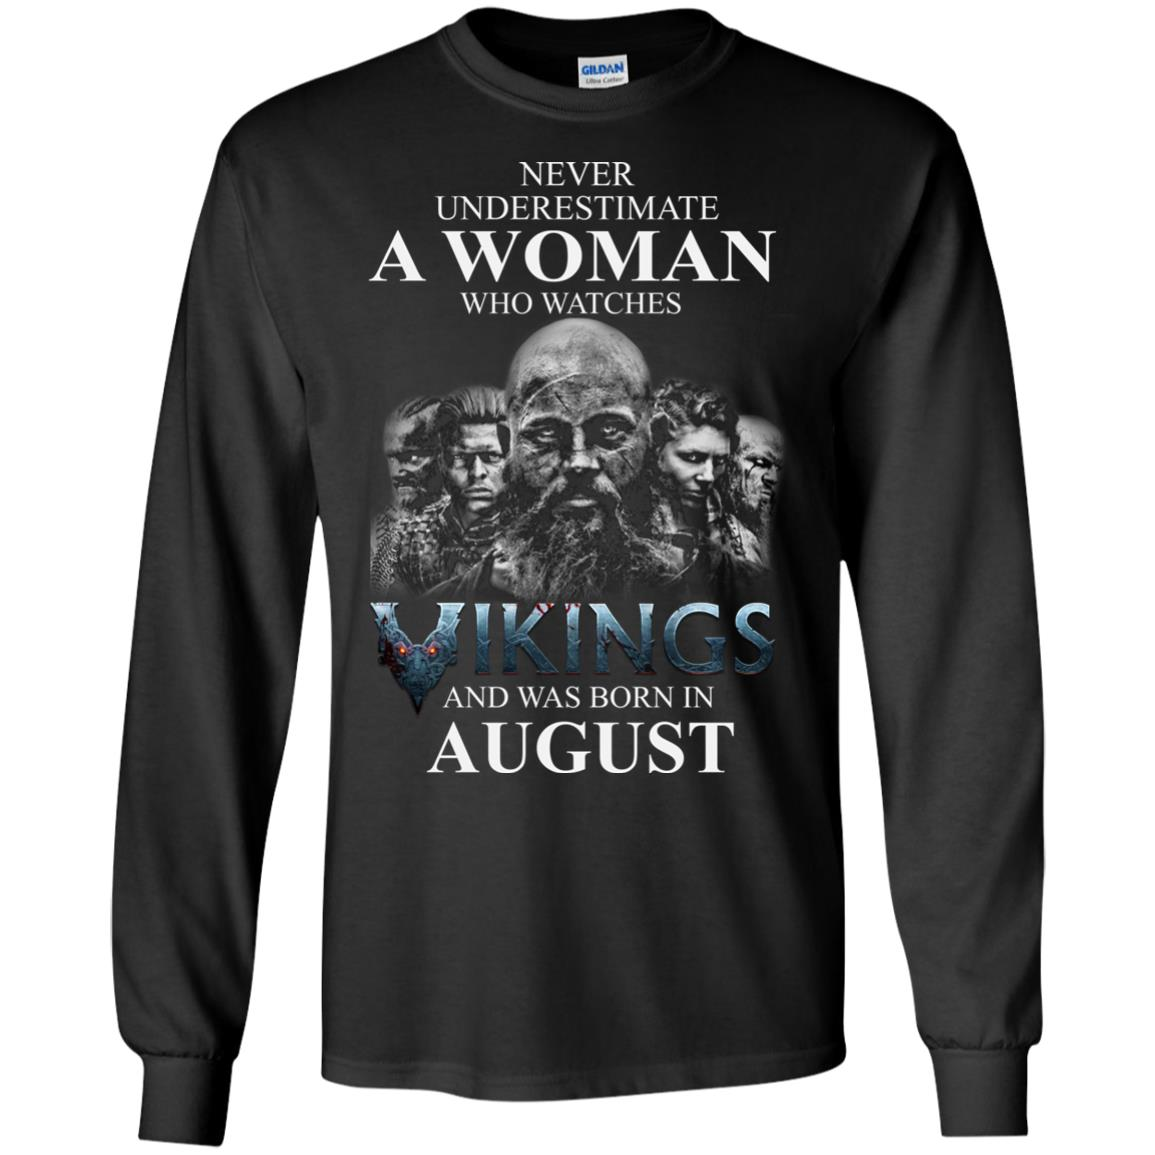 image 1269 - Never Underestimate A woman who watches Vikings and was born in August shirt